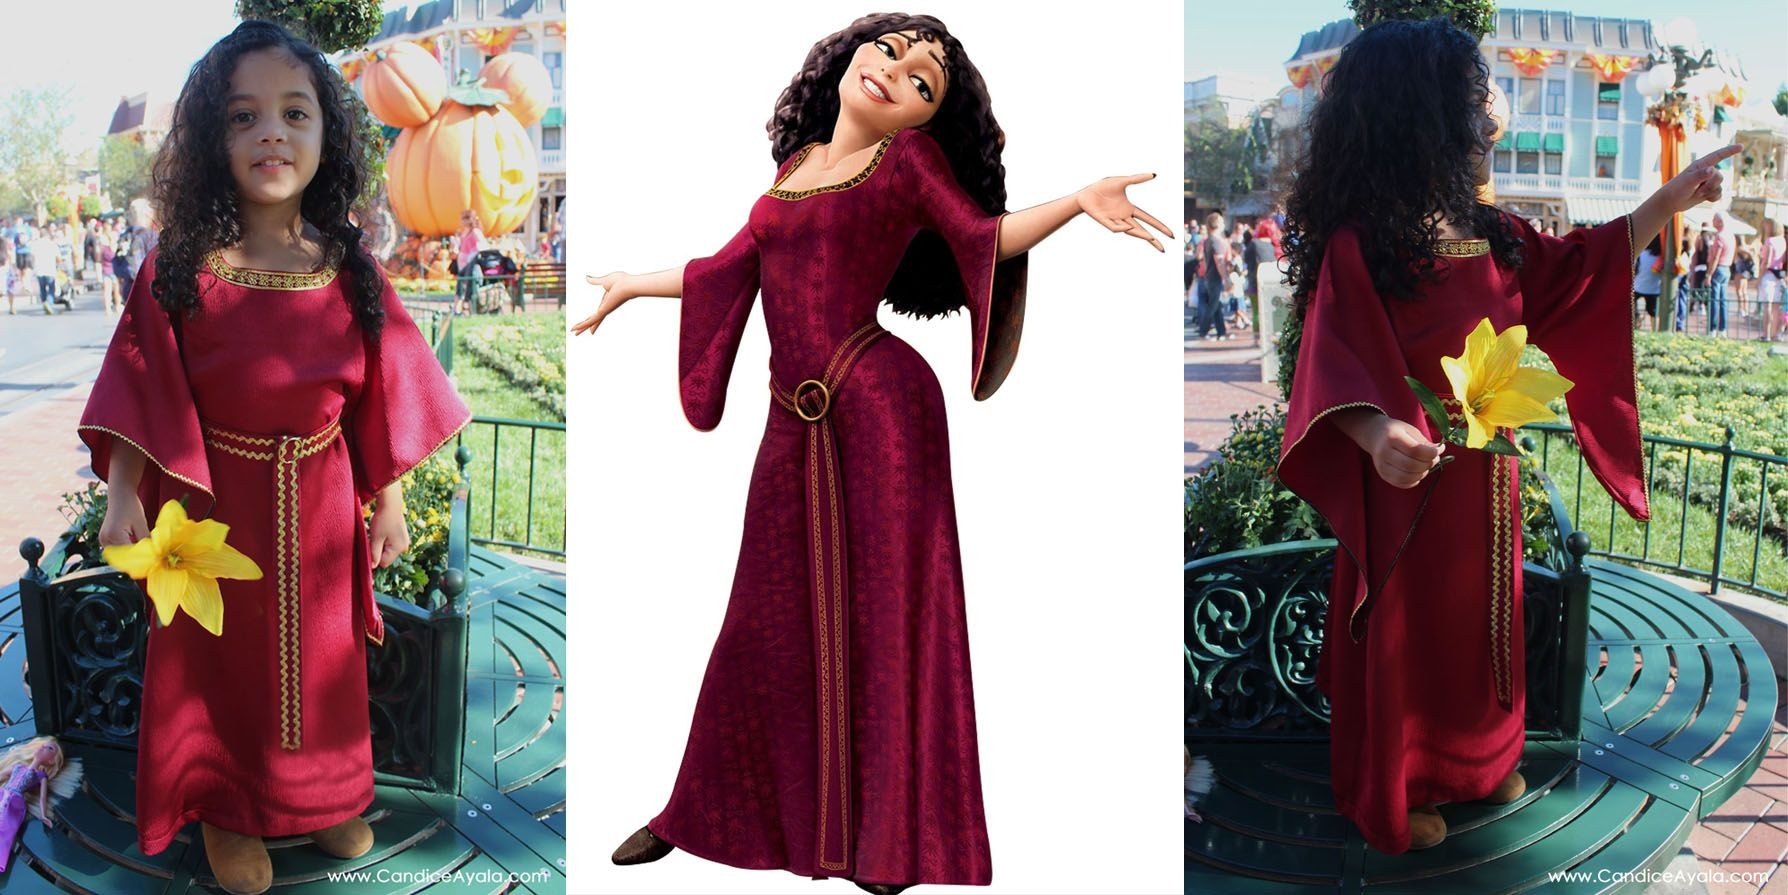 Best ideas about Villain Costumes DIY . Save or Pin Halloween at Disneyland 2015 DIY Mother Gothel Costume Now.